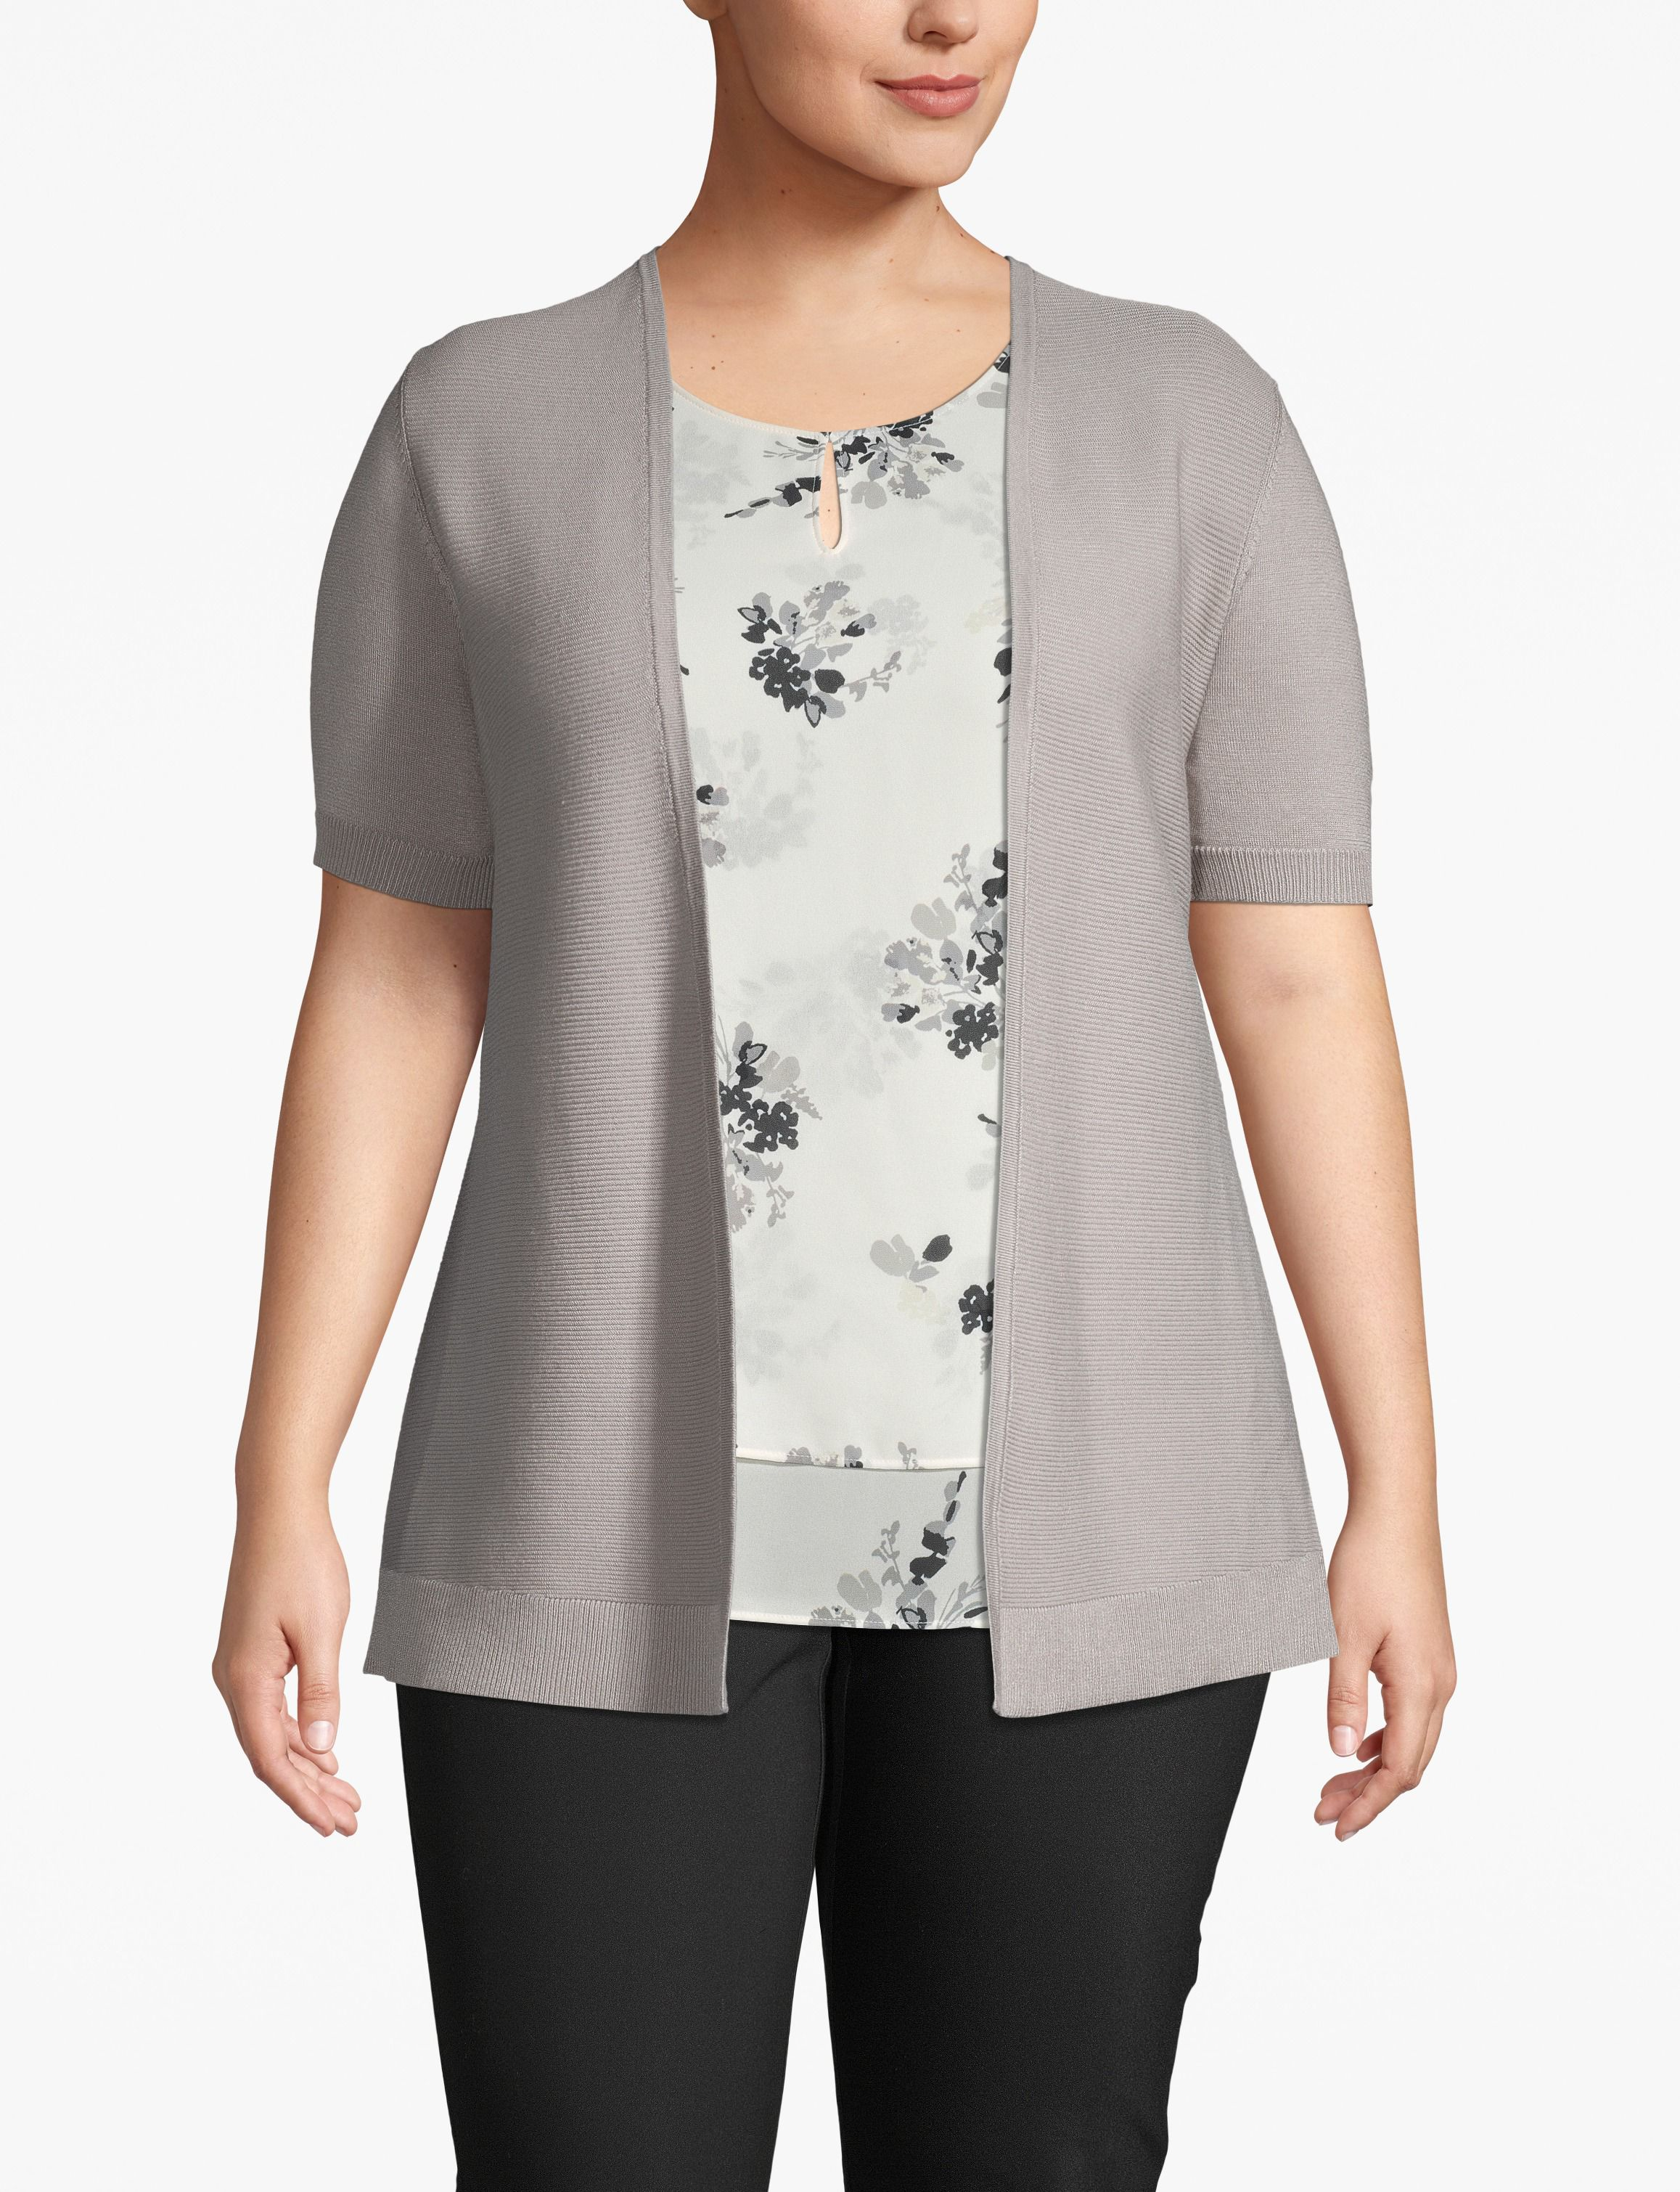 e 	Lane Bryant Women's Ribbed-Front Short Sleeve Cardigan 26/28 Ash